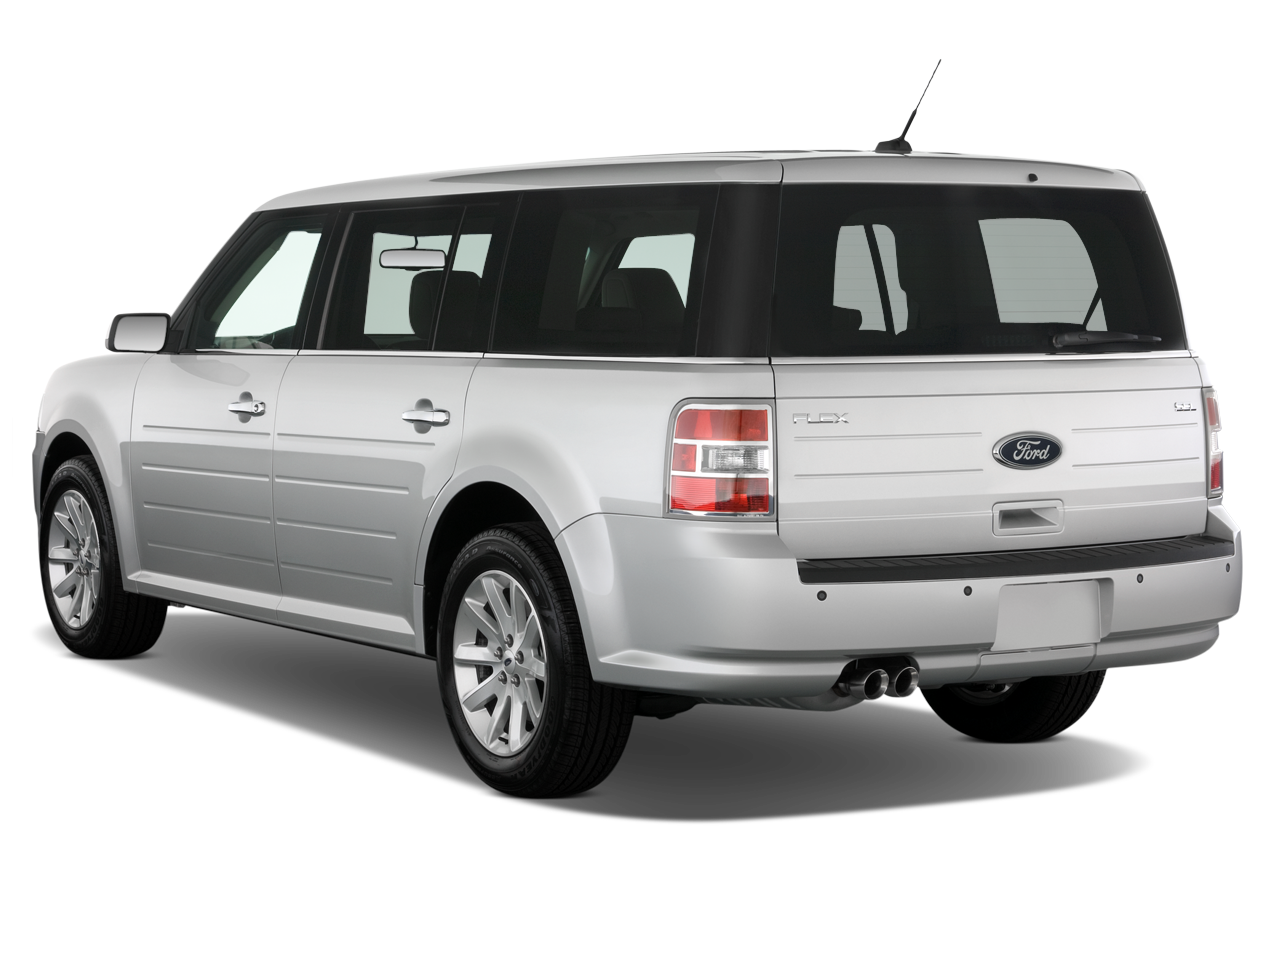 2009 ford flex limited awd road trip in new ford flex. Black Bedroom Furniture Sets. Home Design Ideas